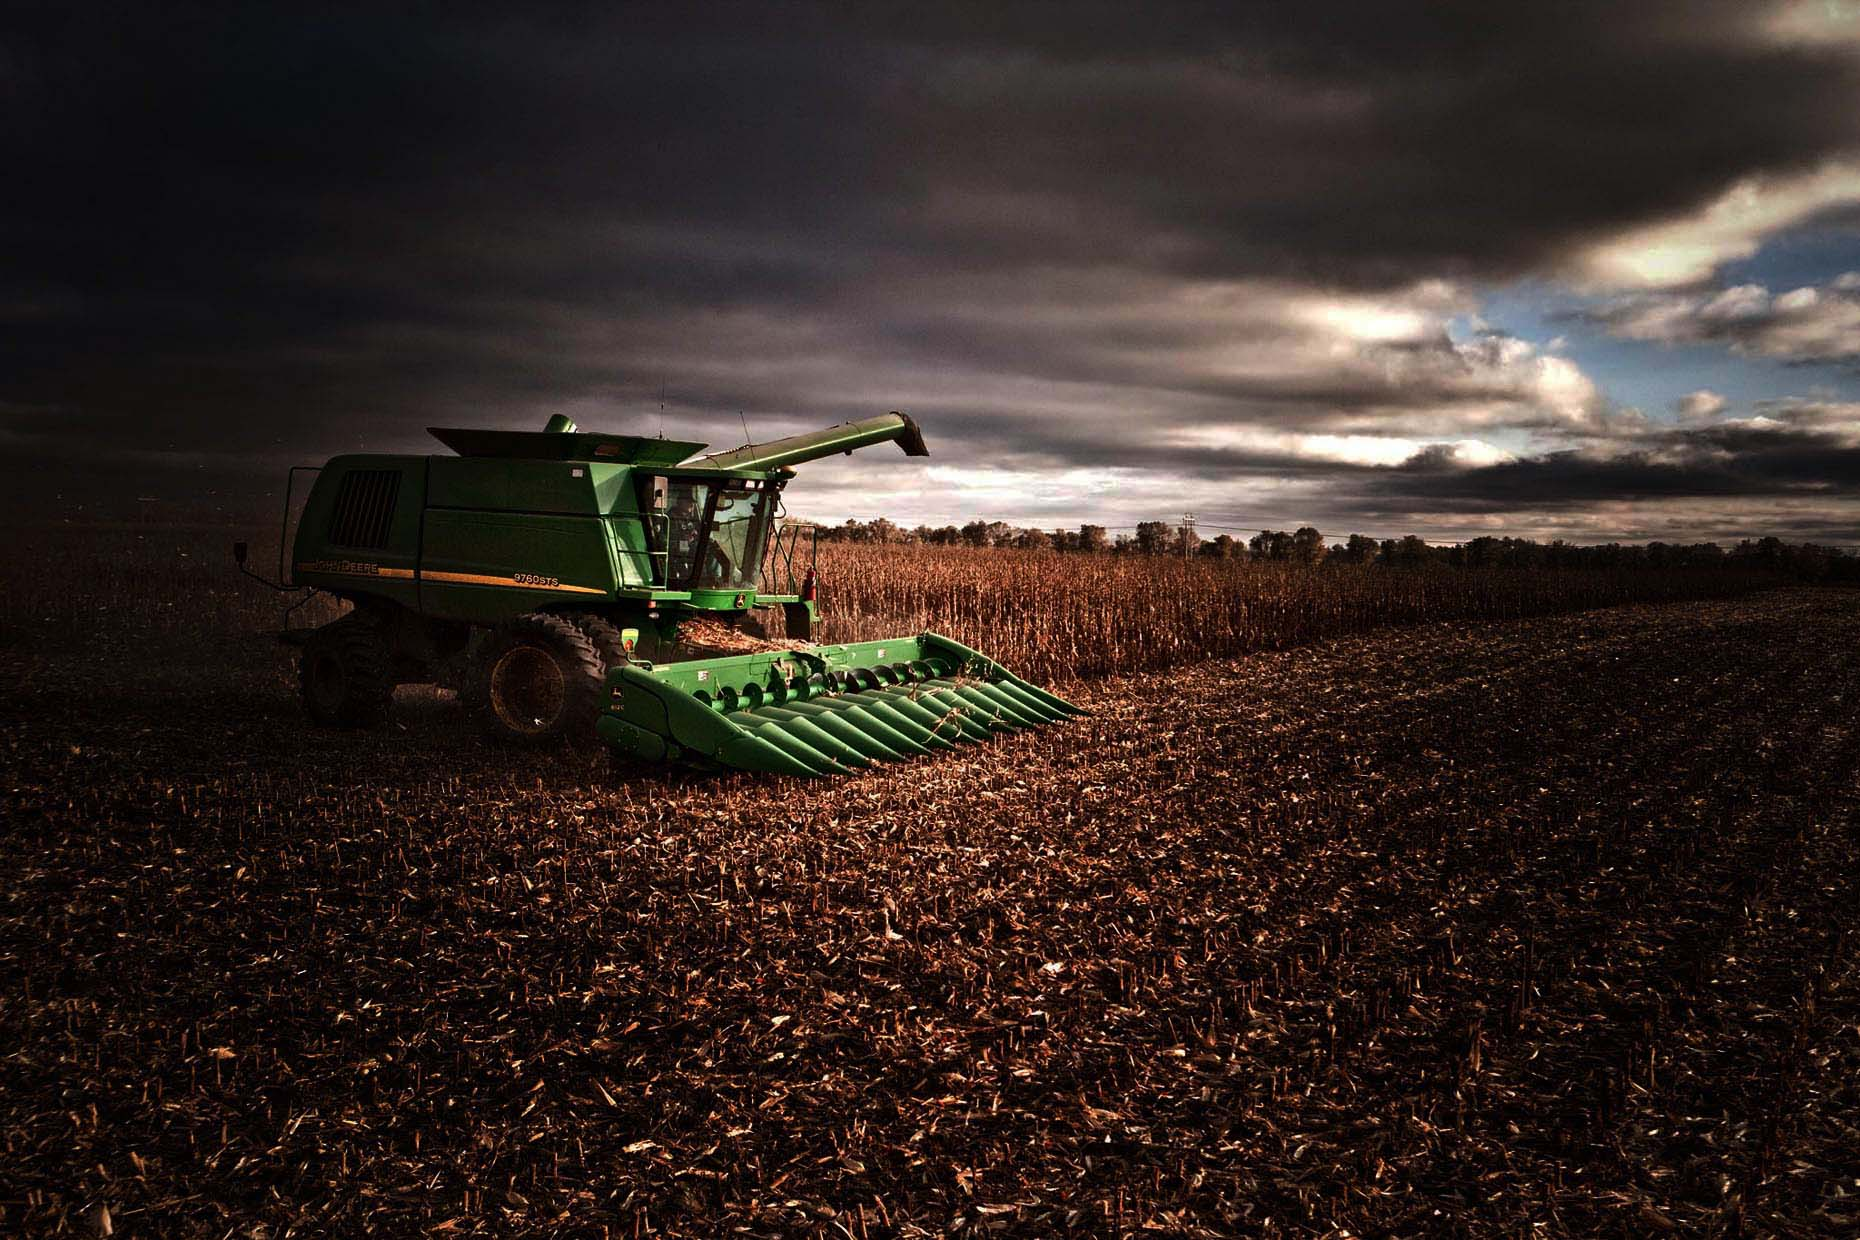 robb_long_Minnesota_corn_farming_11